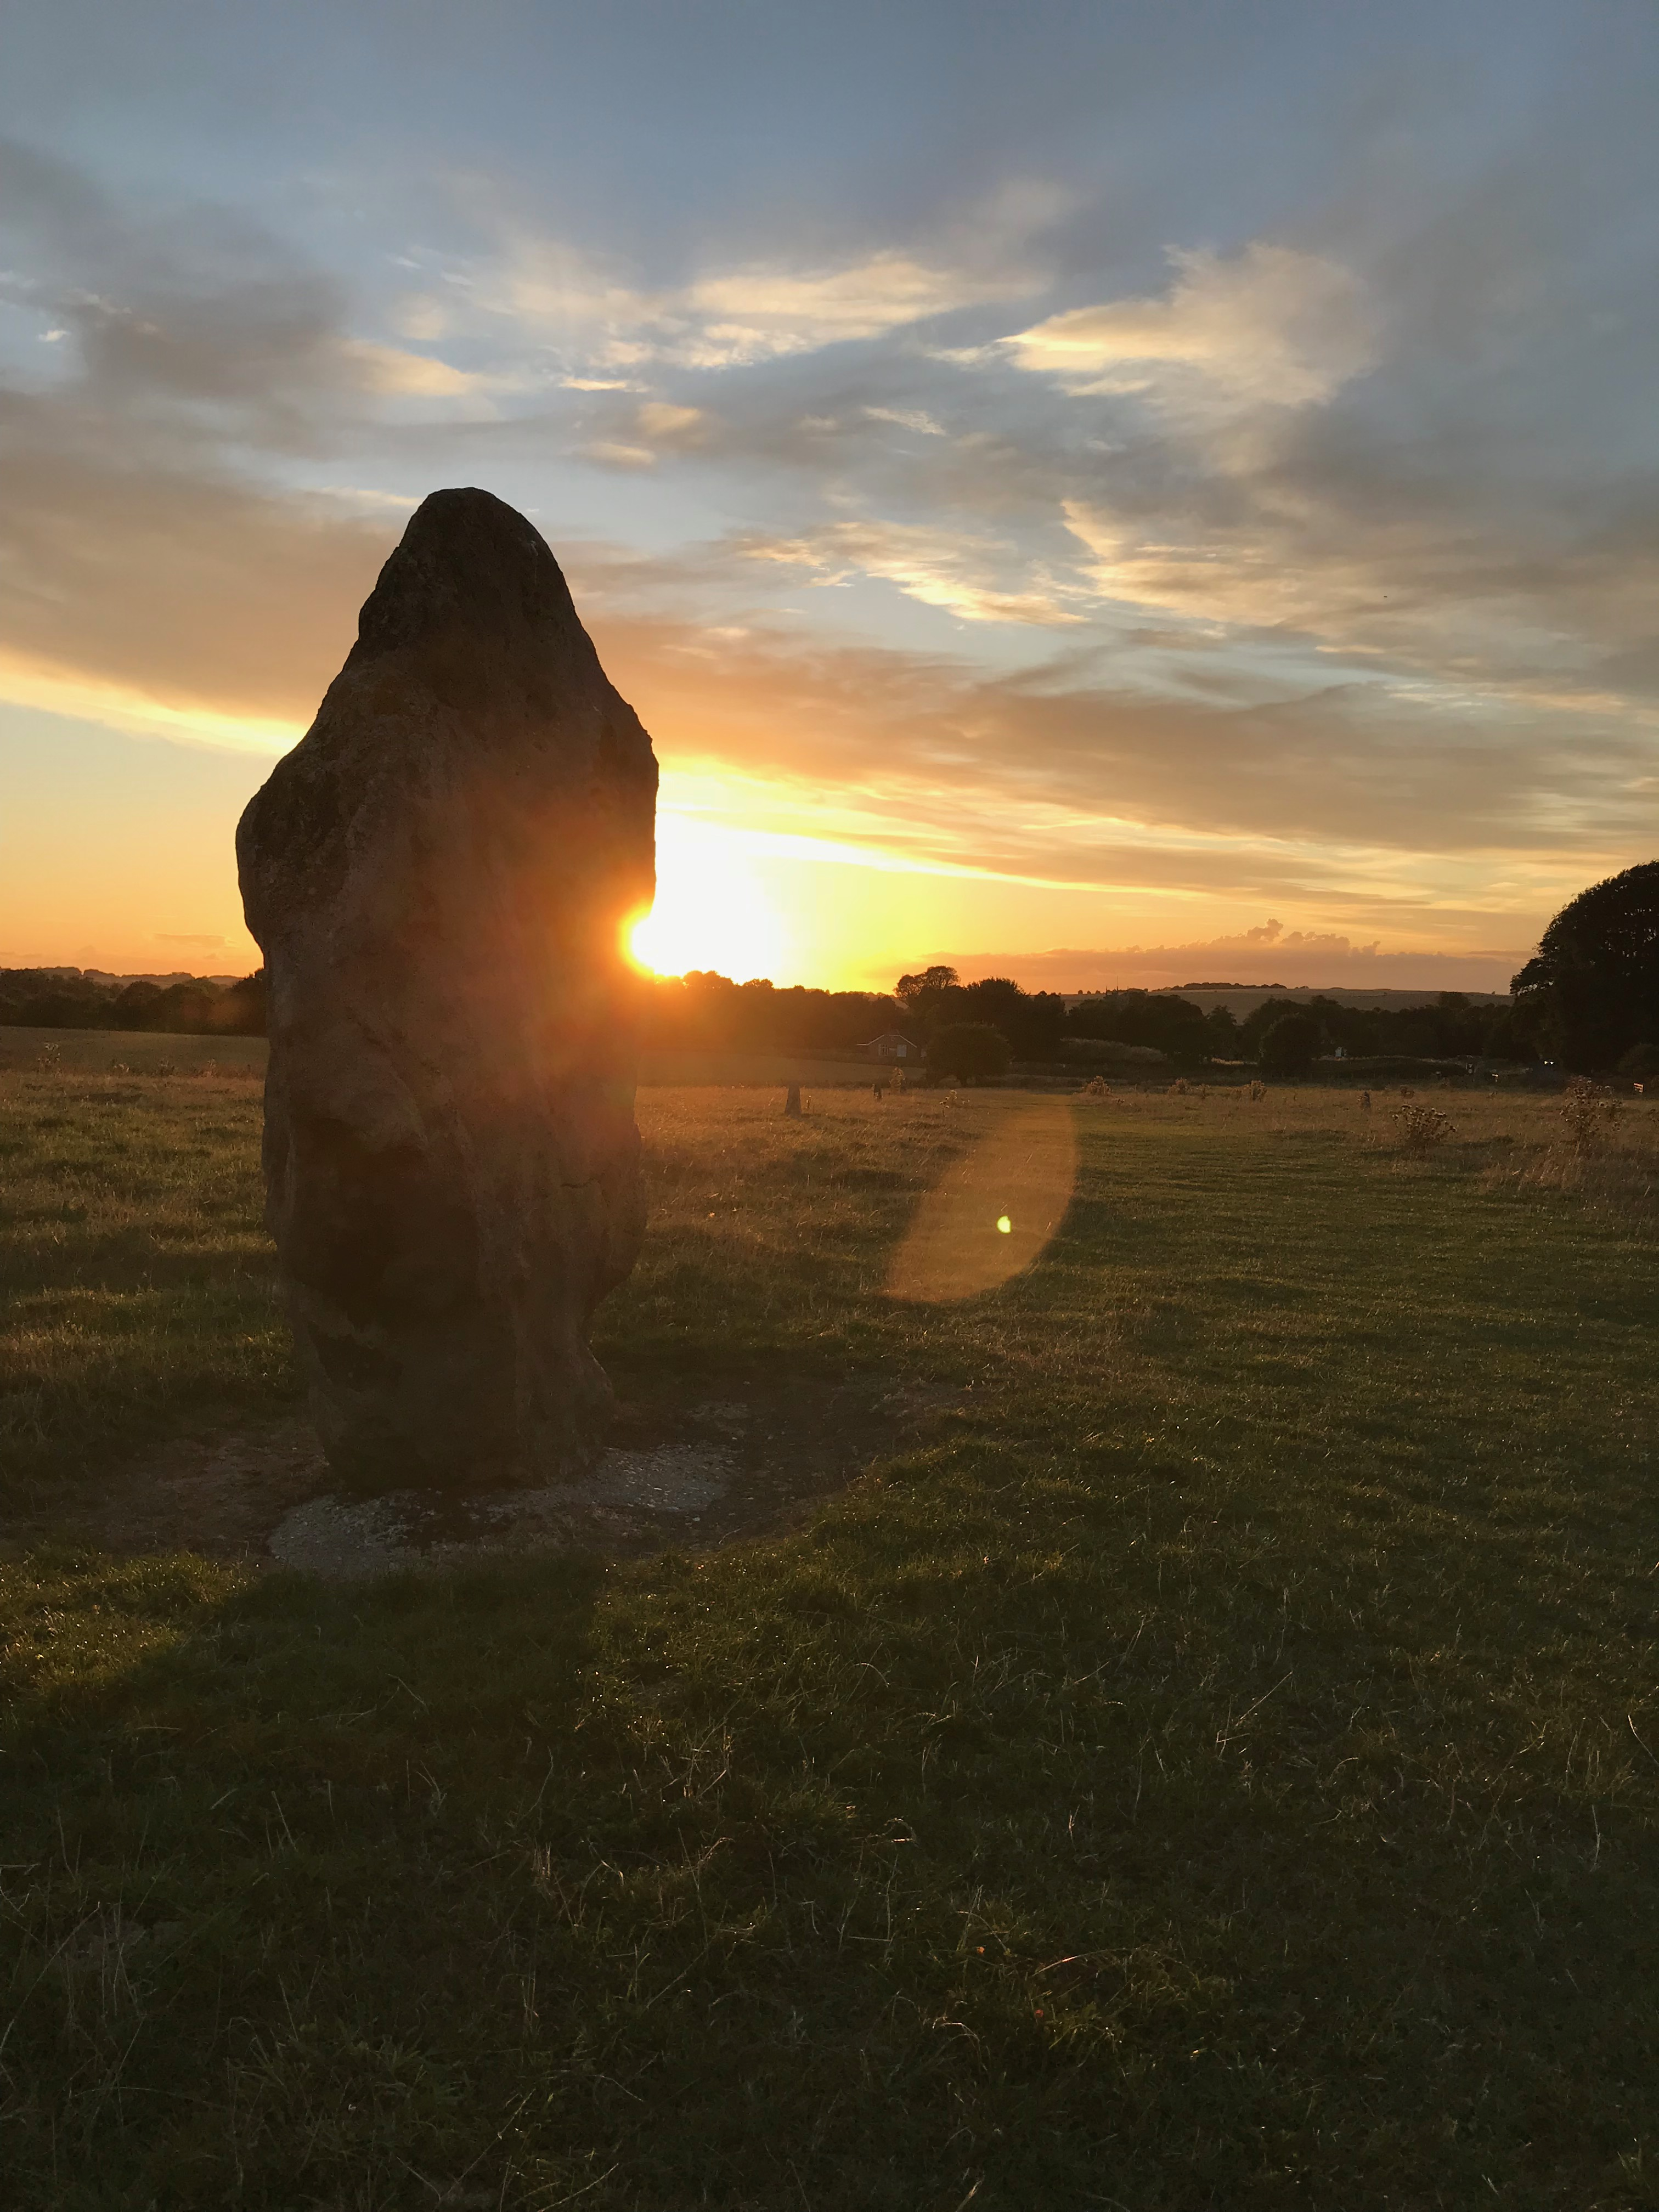 Silhouette of a standing stone with the sun setting just behind it